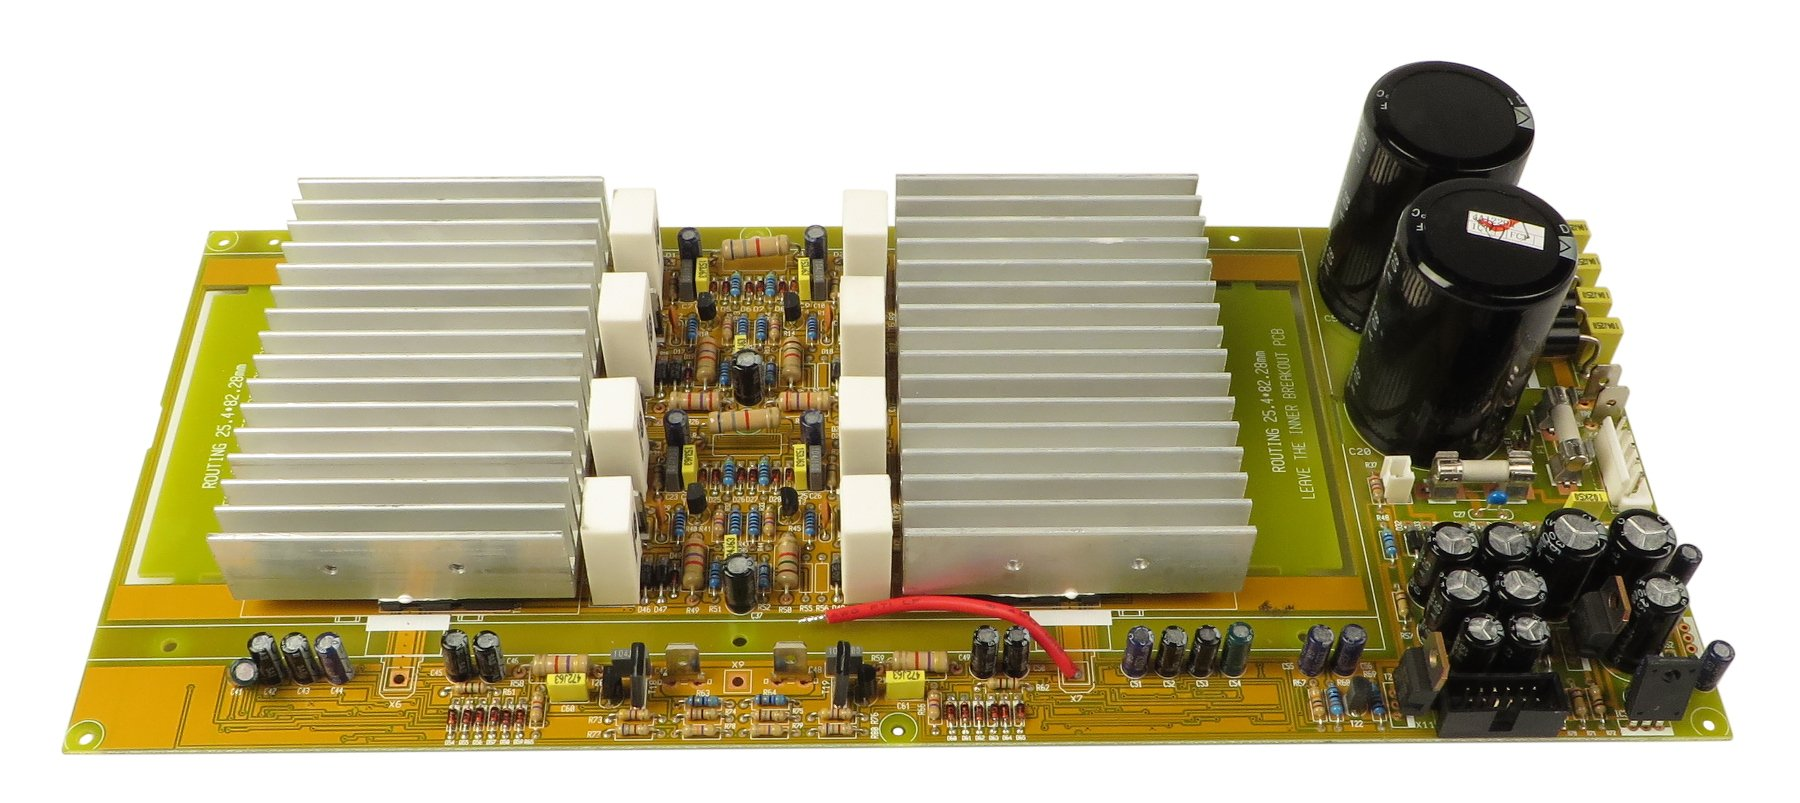 Amp PCB Assembly for PMP2000 and PMH2000